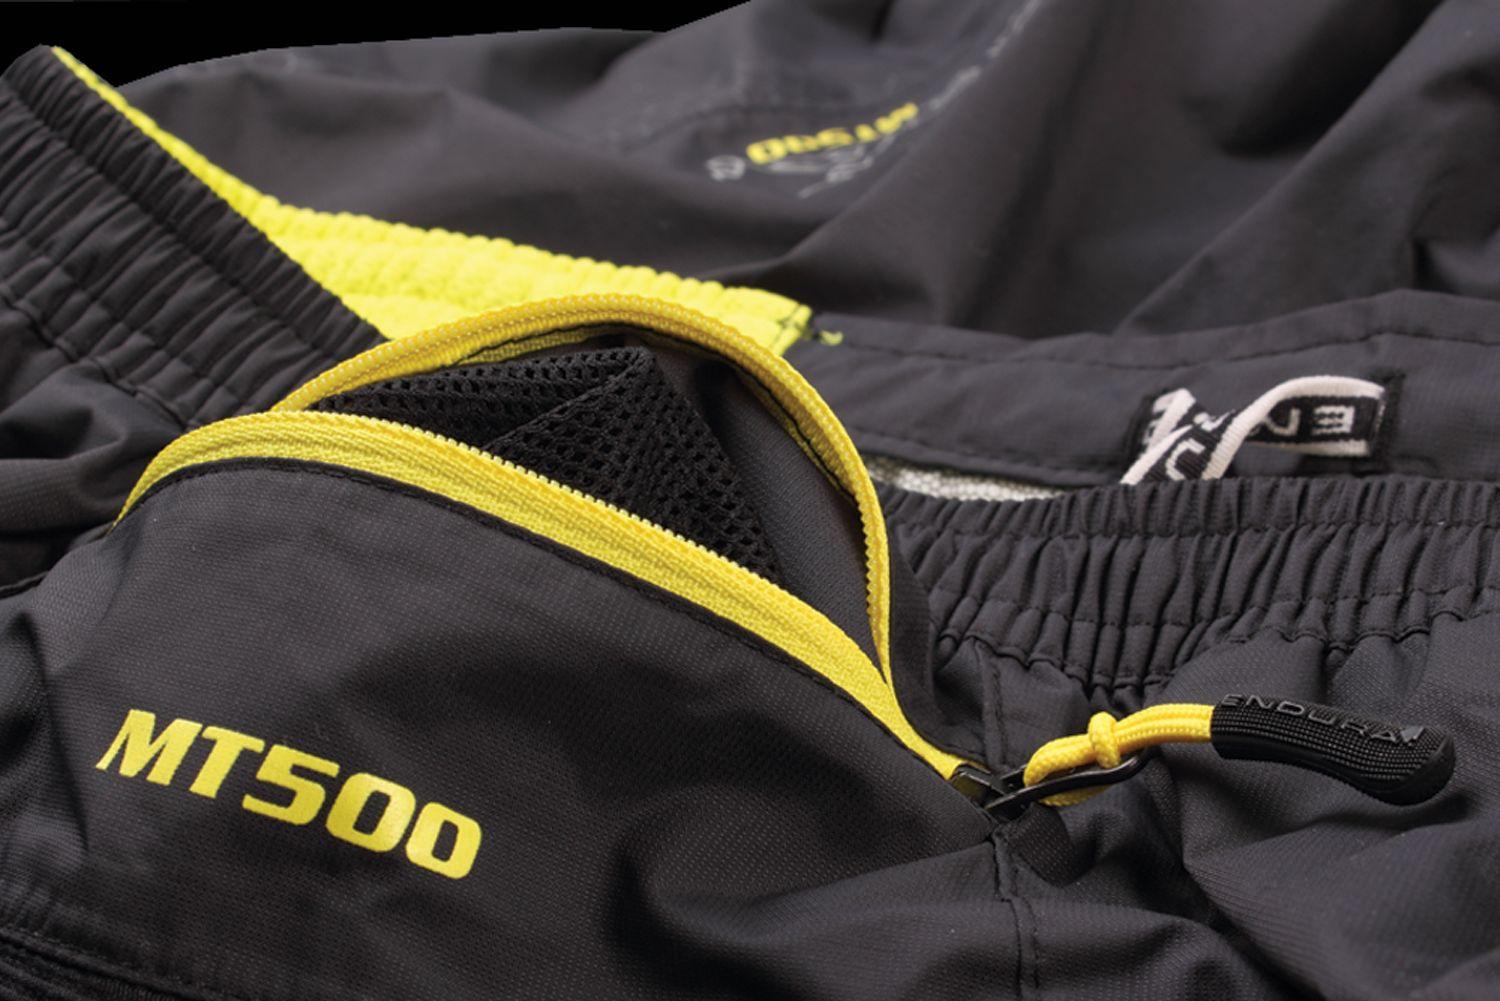 MT500-Waterproof-Short-02